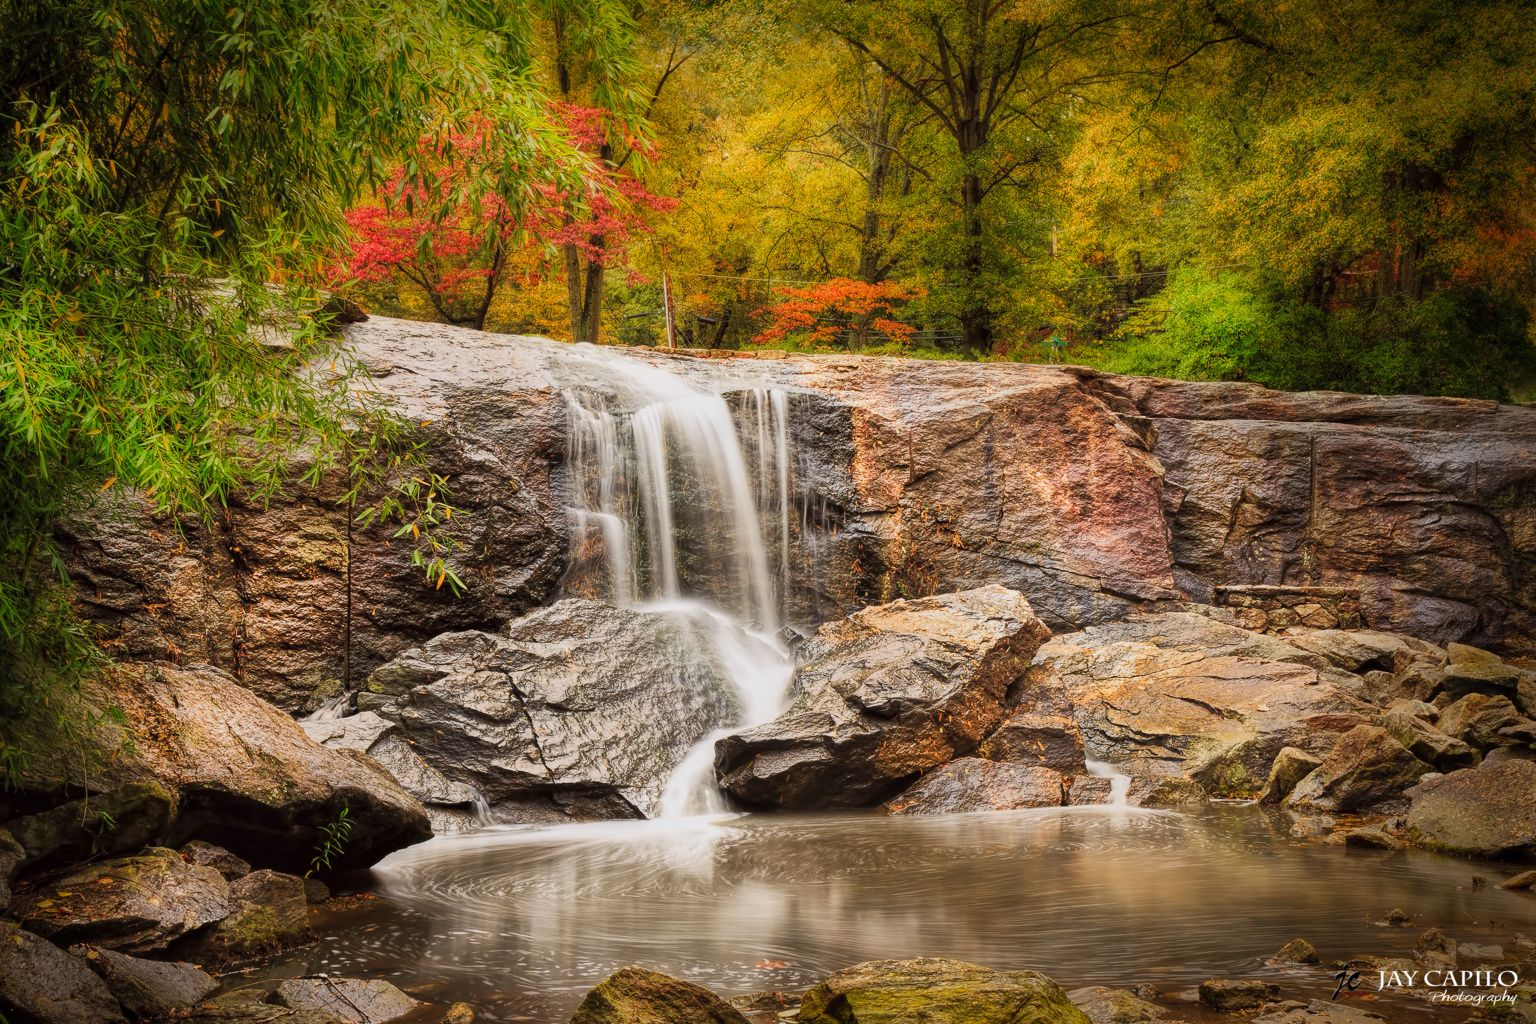 This waterfall is in the Rock Quarry Garden of Cleveland Park in ...